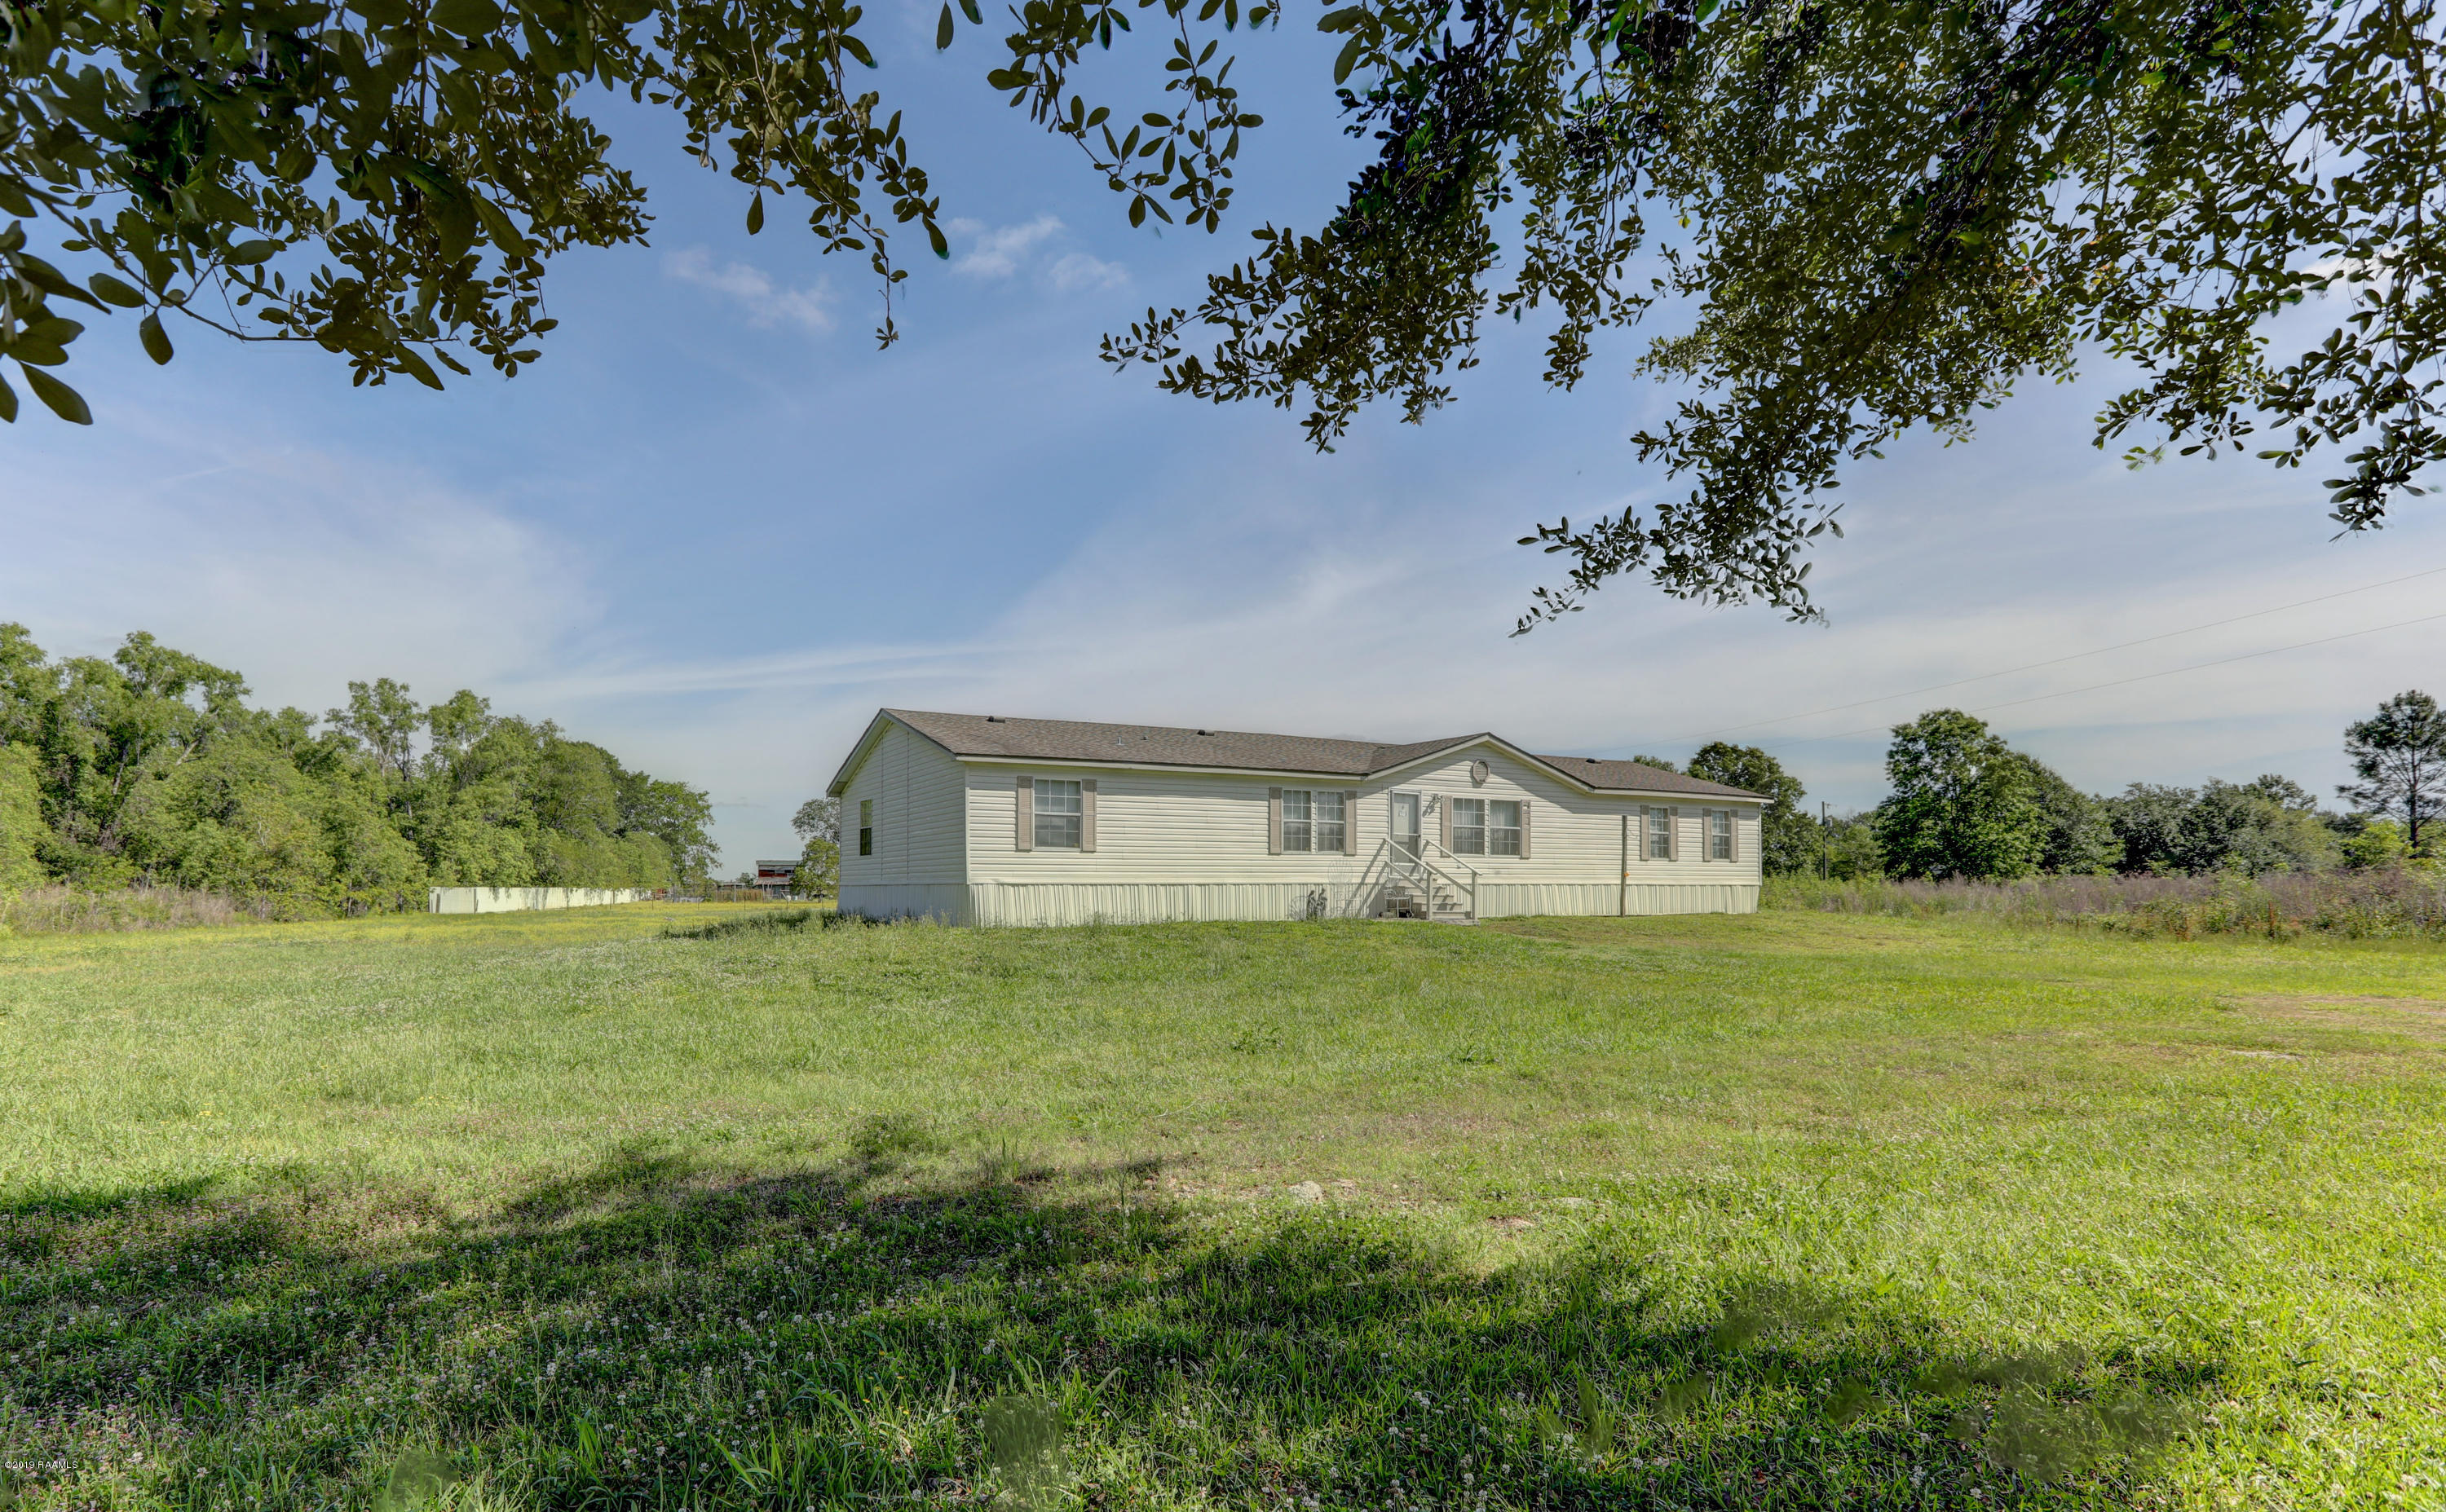 1377 Division Road, Arnaudville, LA 70512 Photo #4